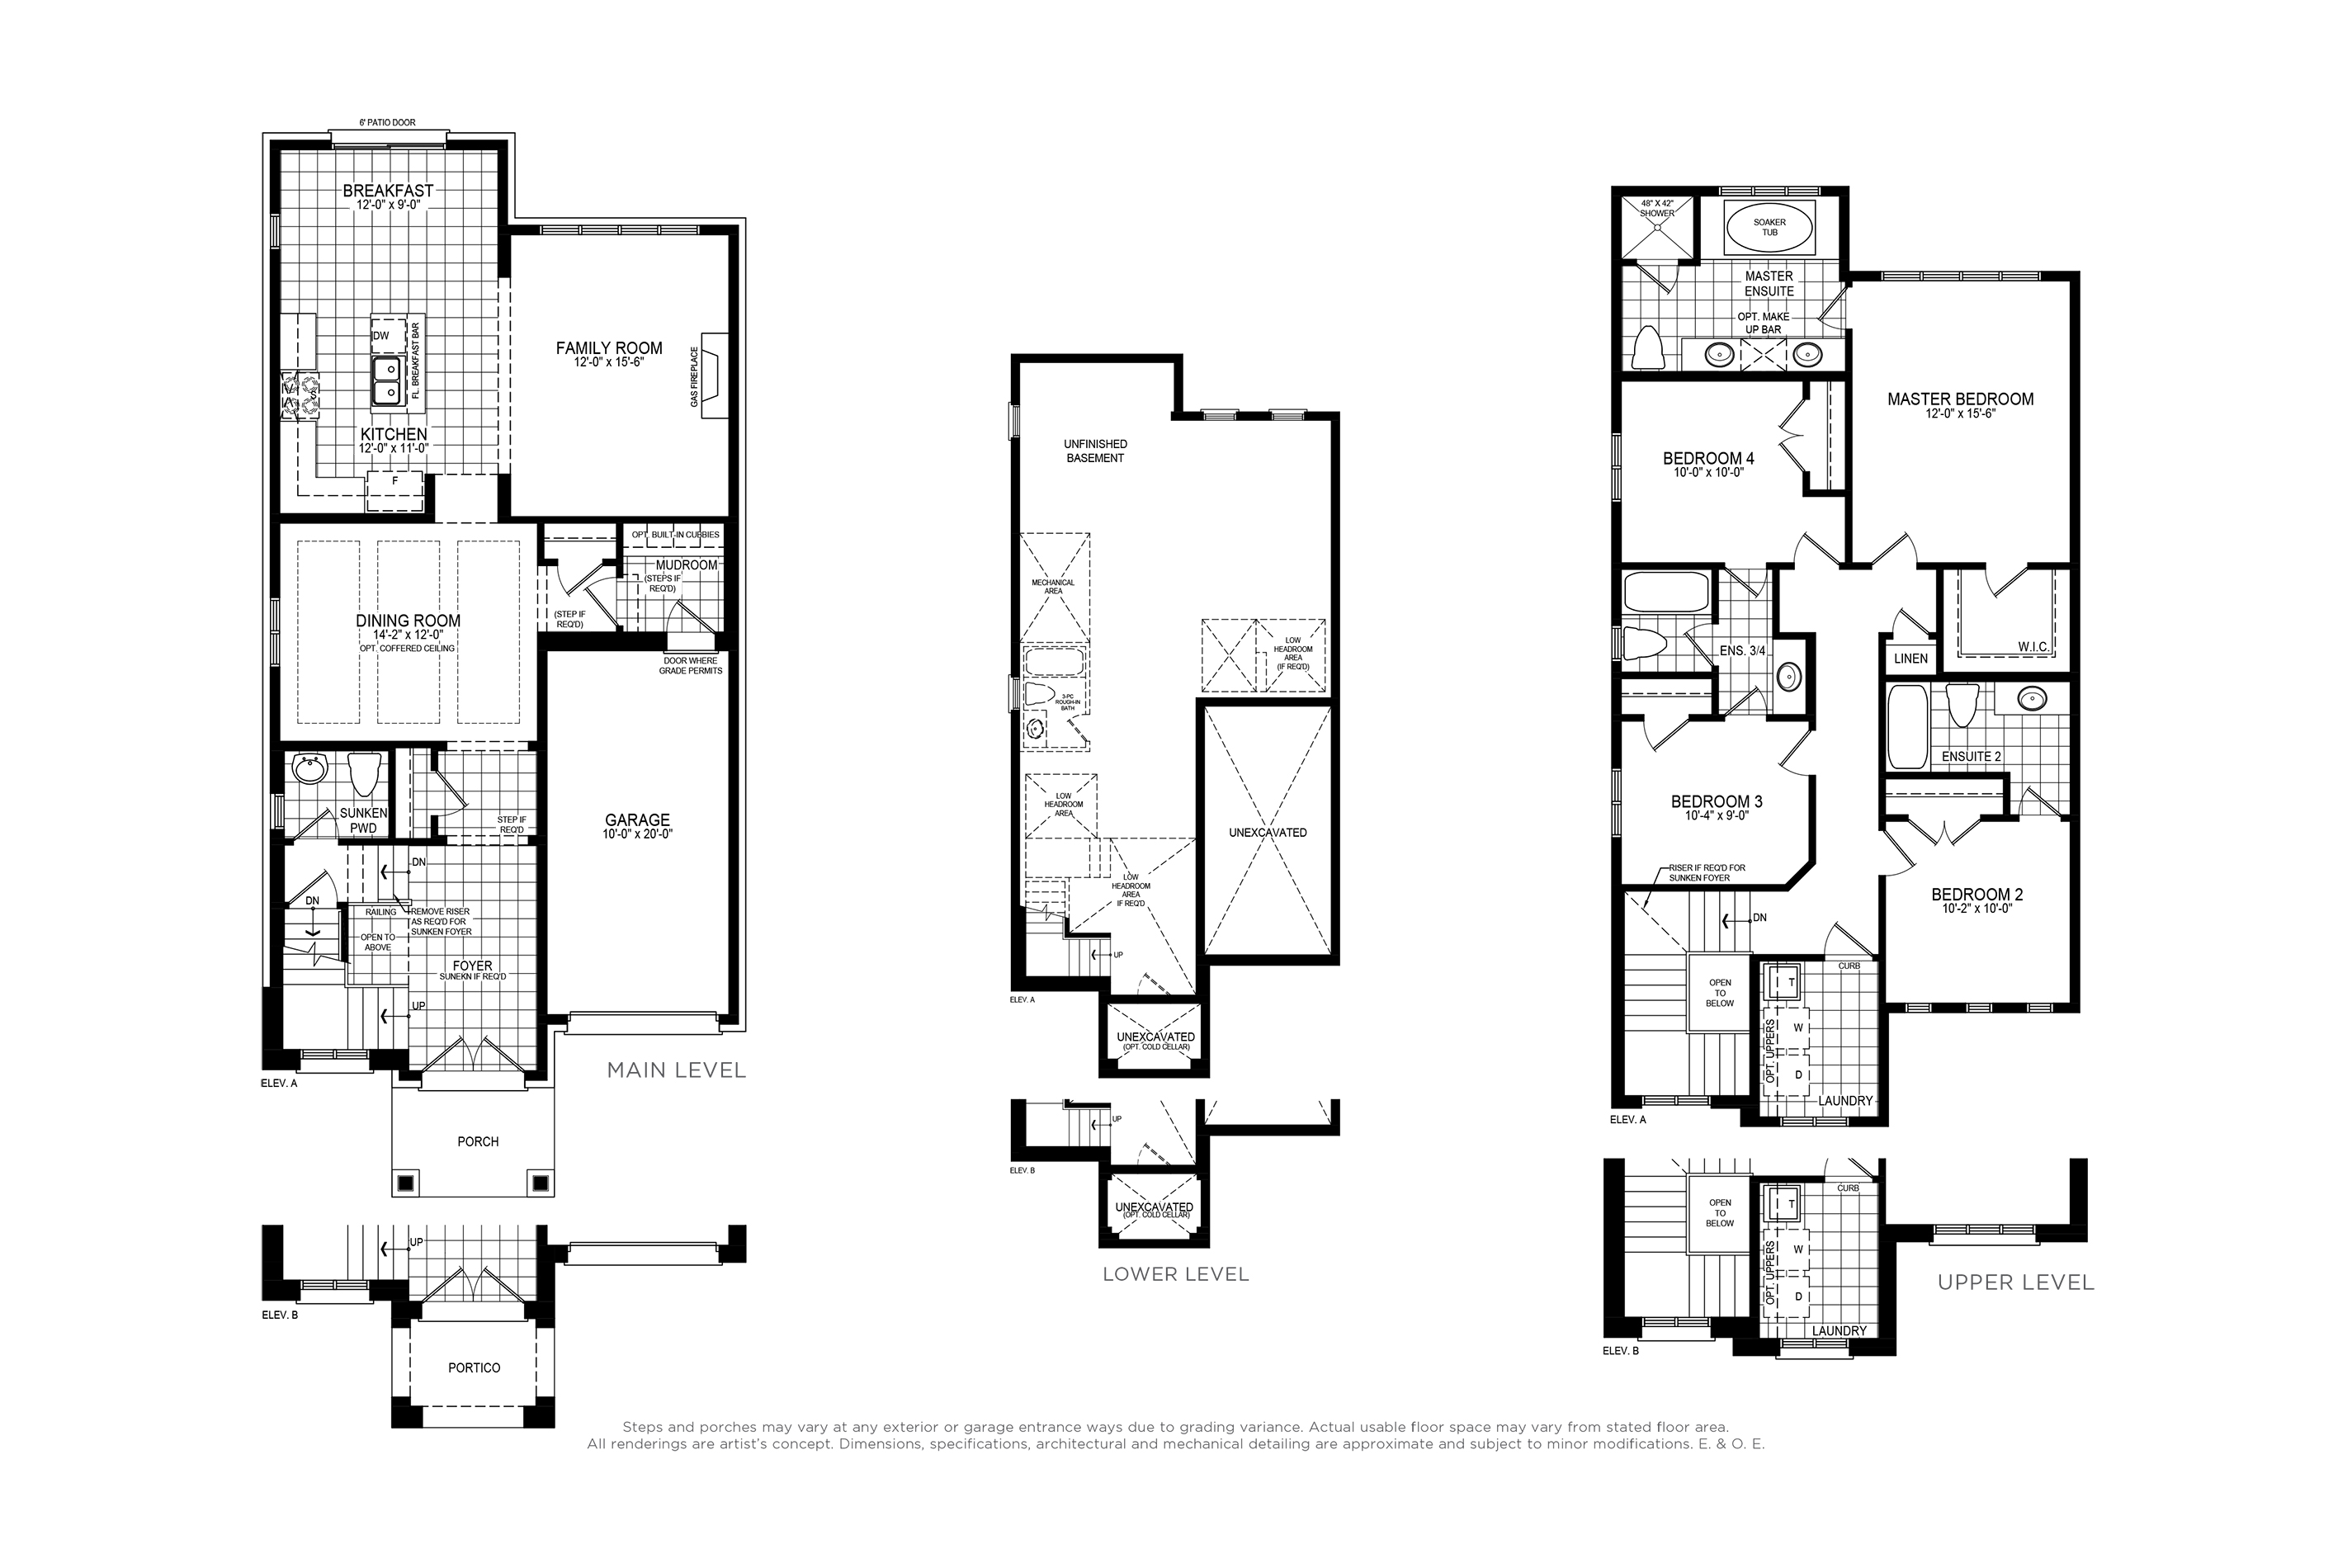 Brighton 2 Floorplan